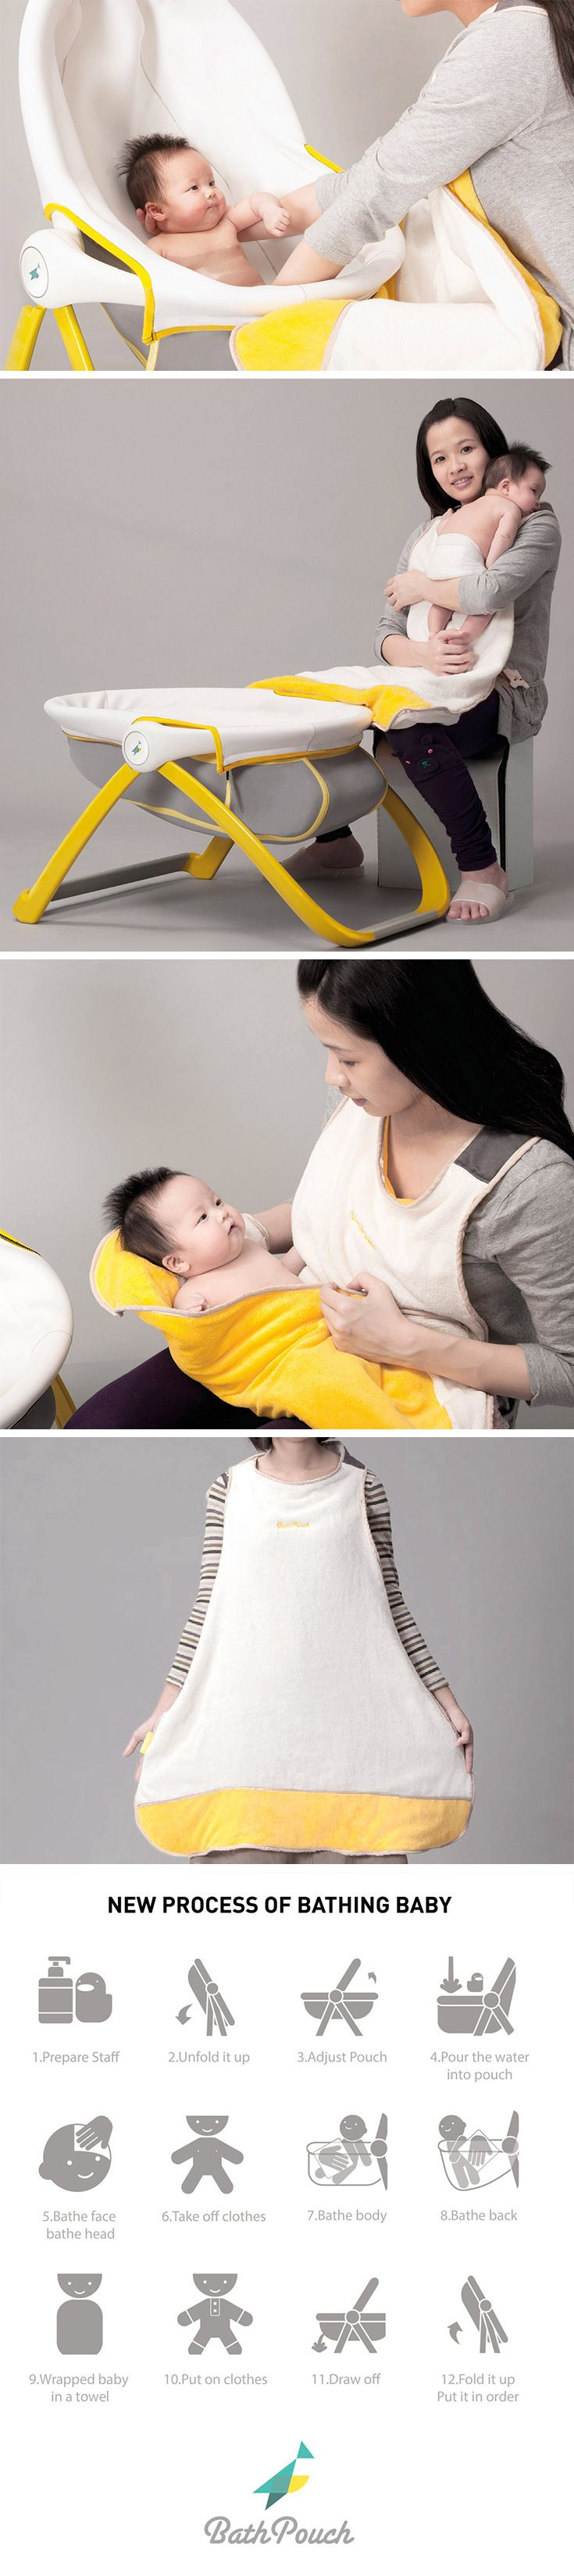 BathPouch rethinks the way you bathe baby. The two-part system is designed to mimic the in-womb experience, the enveloping design of both aims to not only ease the bathing process, but keep little ones feeling safe and cozy.